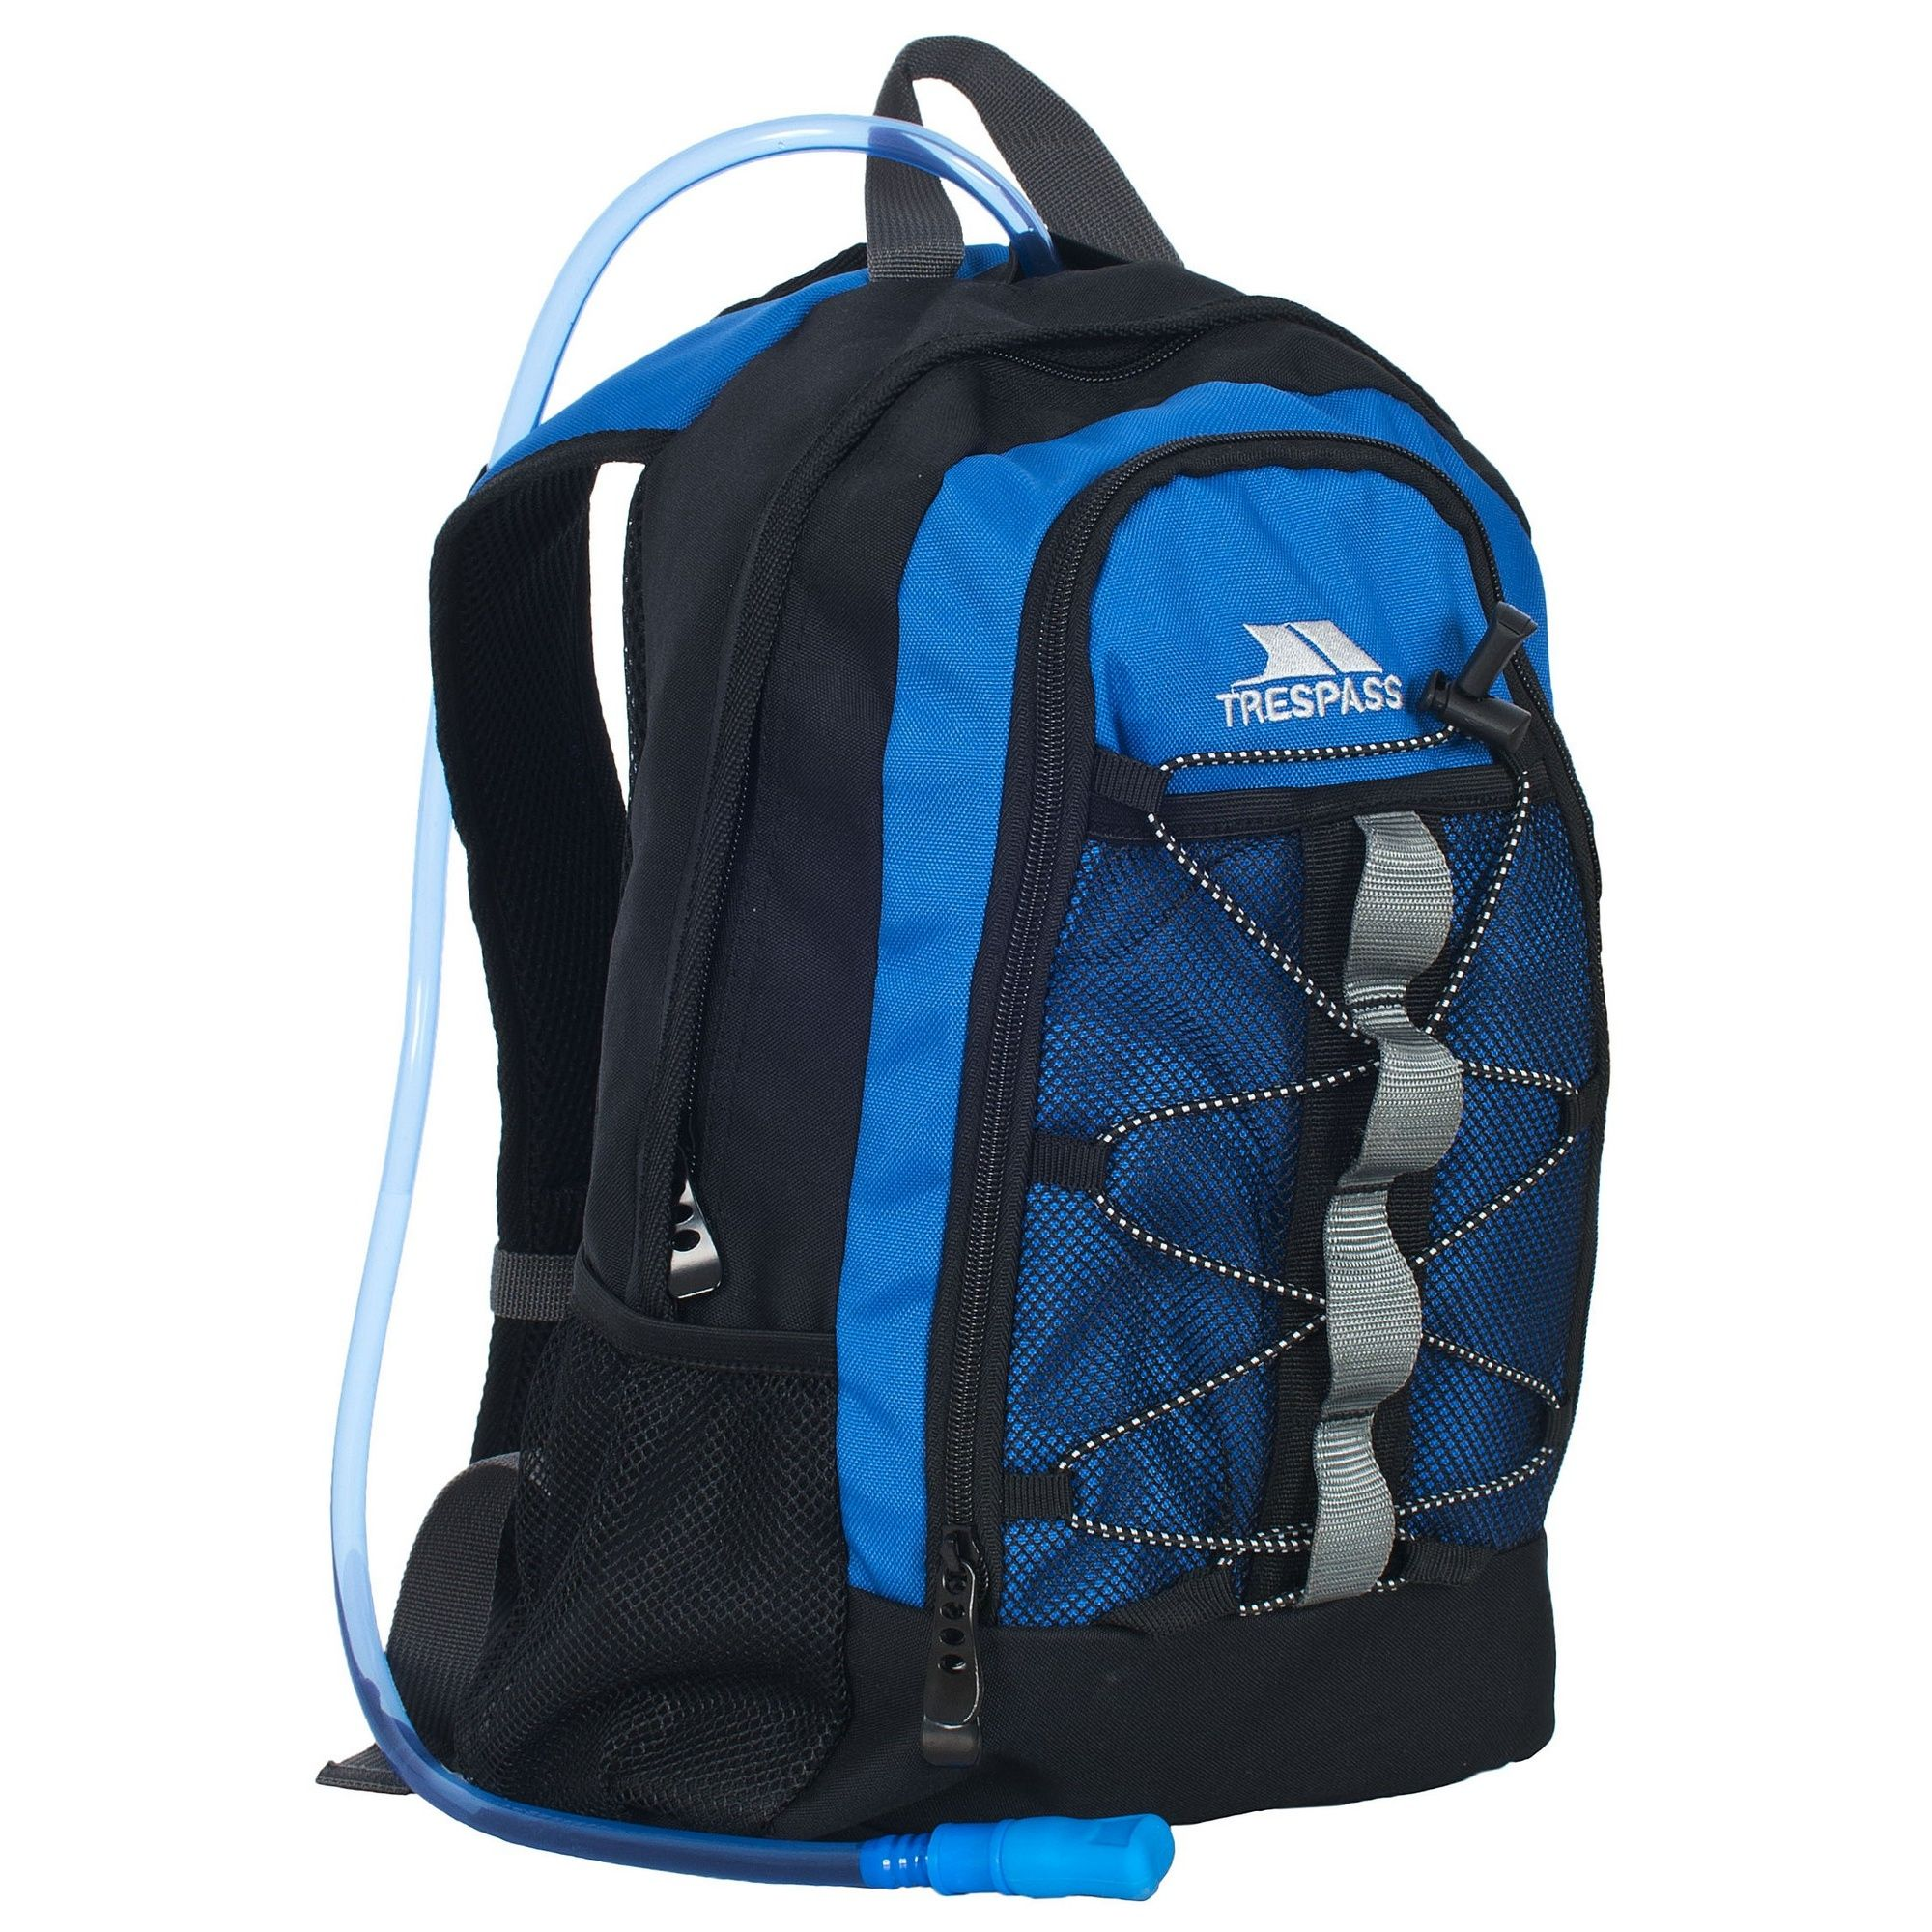 Trespass Slake Hydration Backpack/Rucksack (14 Litres) With Water Bladder (2 Litres)